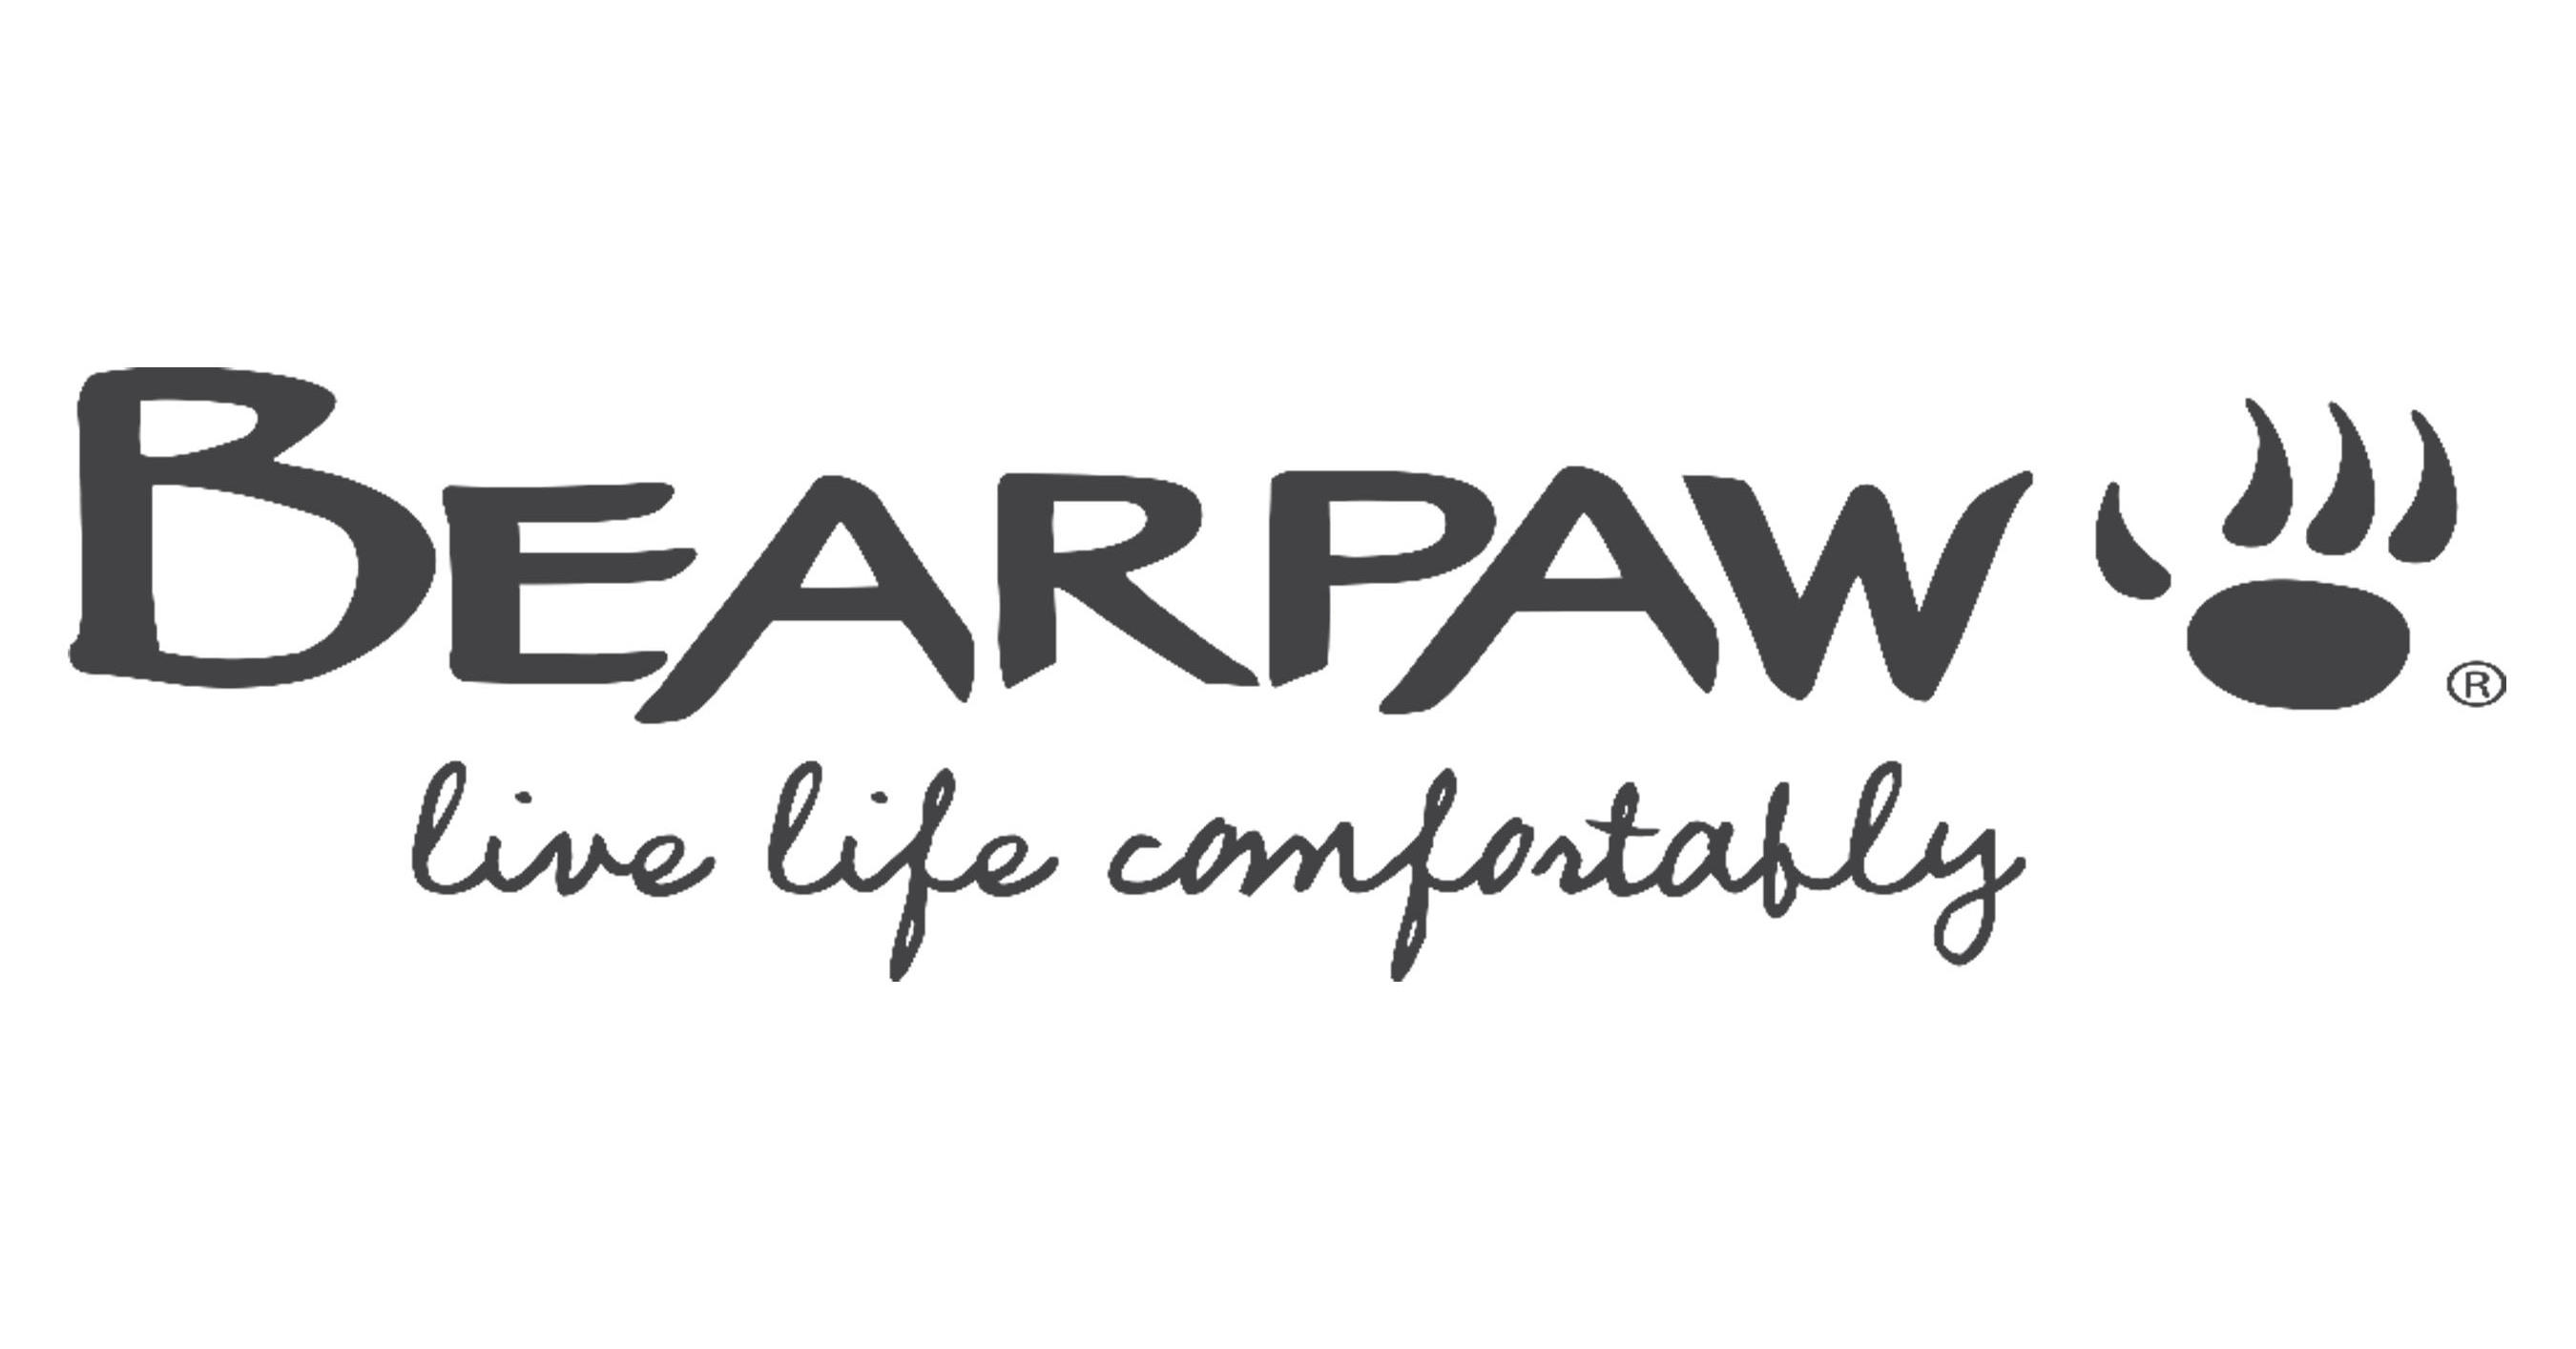 BEARPAW Announces Partnership With European Bleckmann